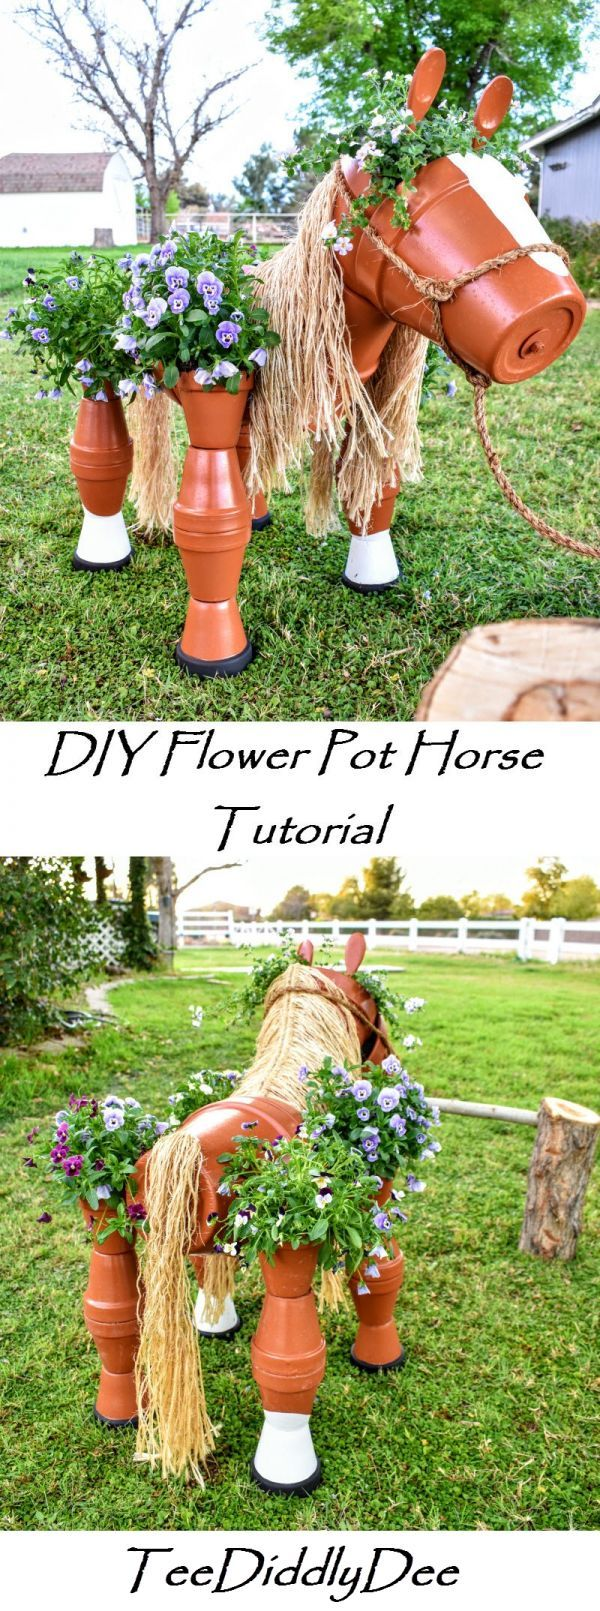 DIY Clay Horse Flower Pot Tutorial - Fun, Whimsical and great for Equestrians